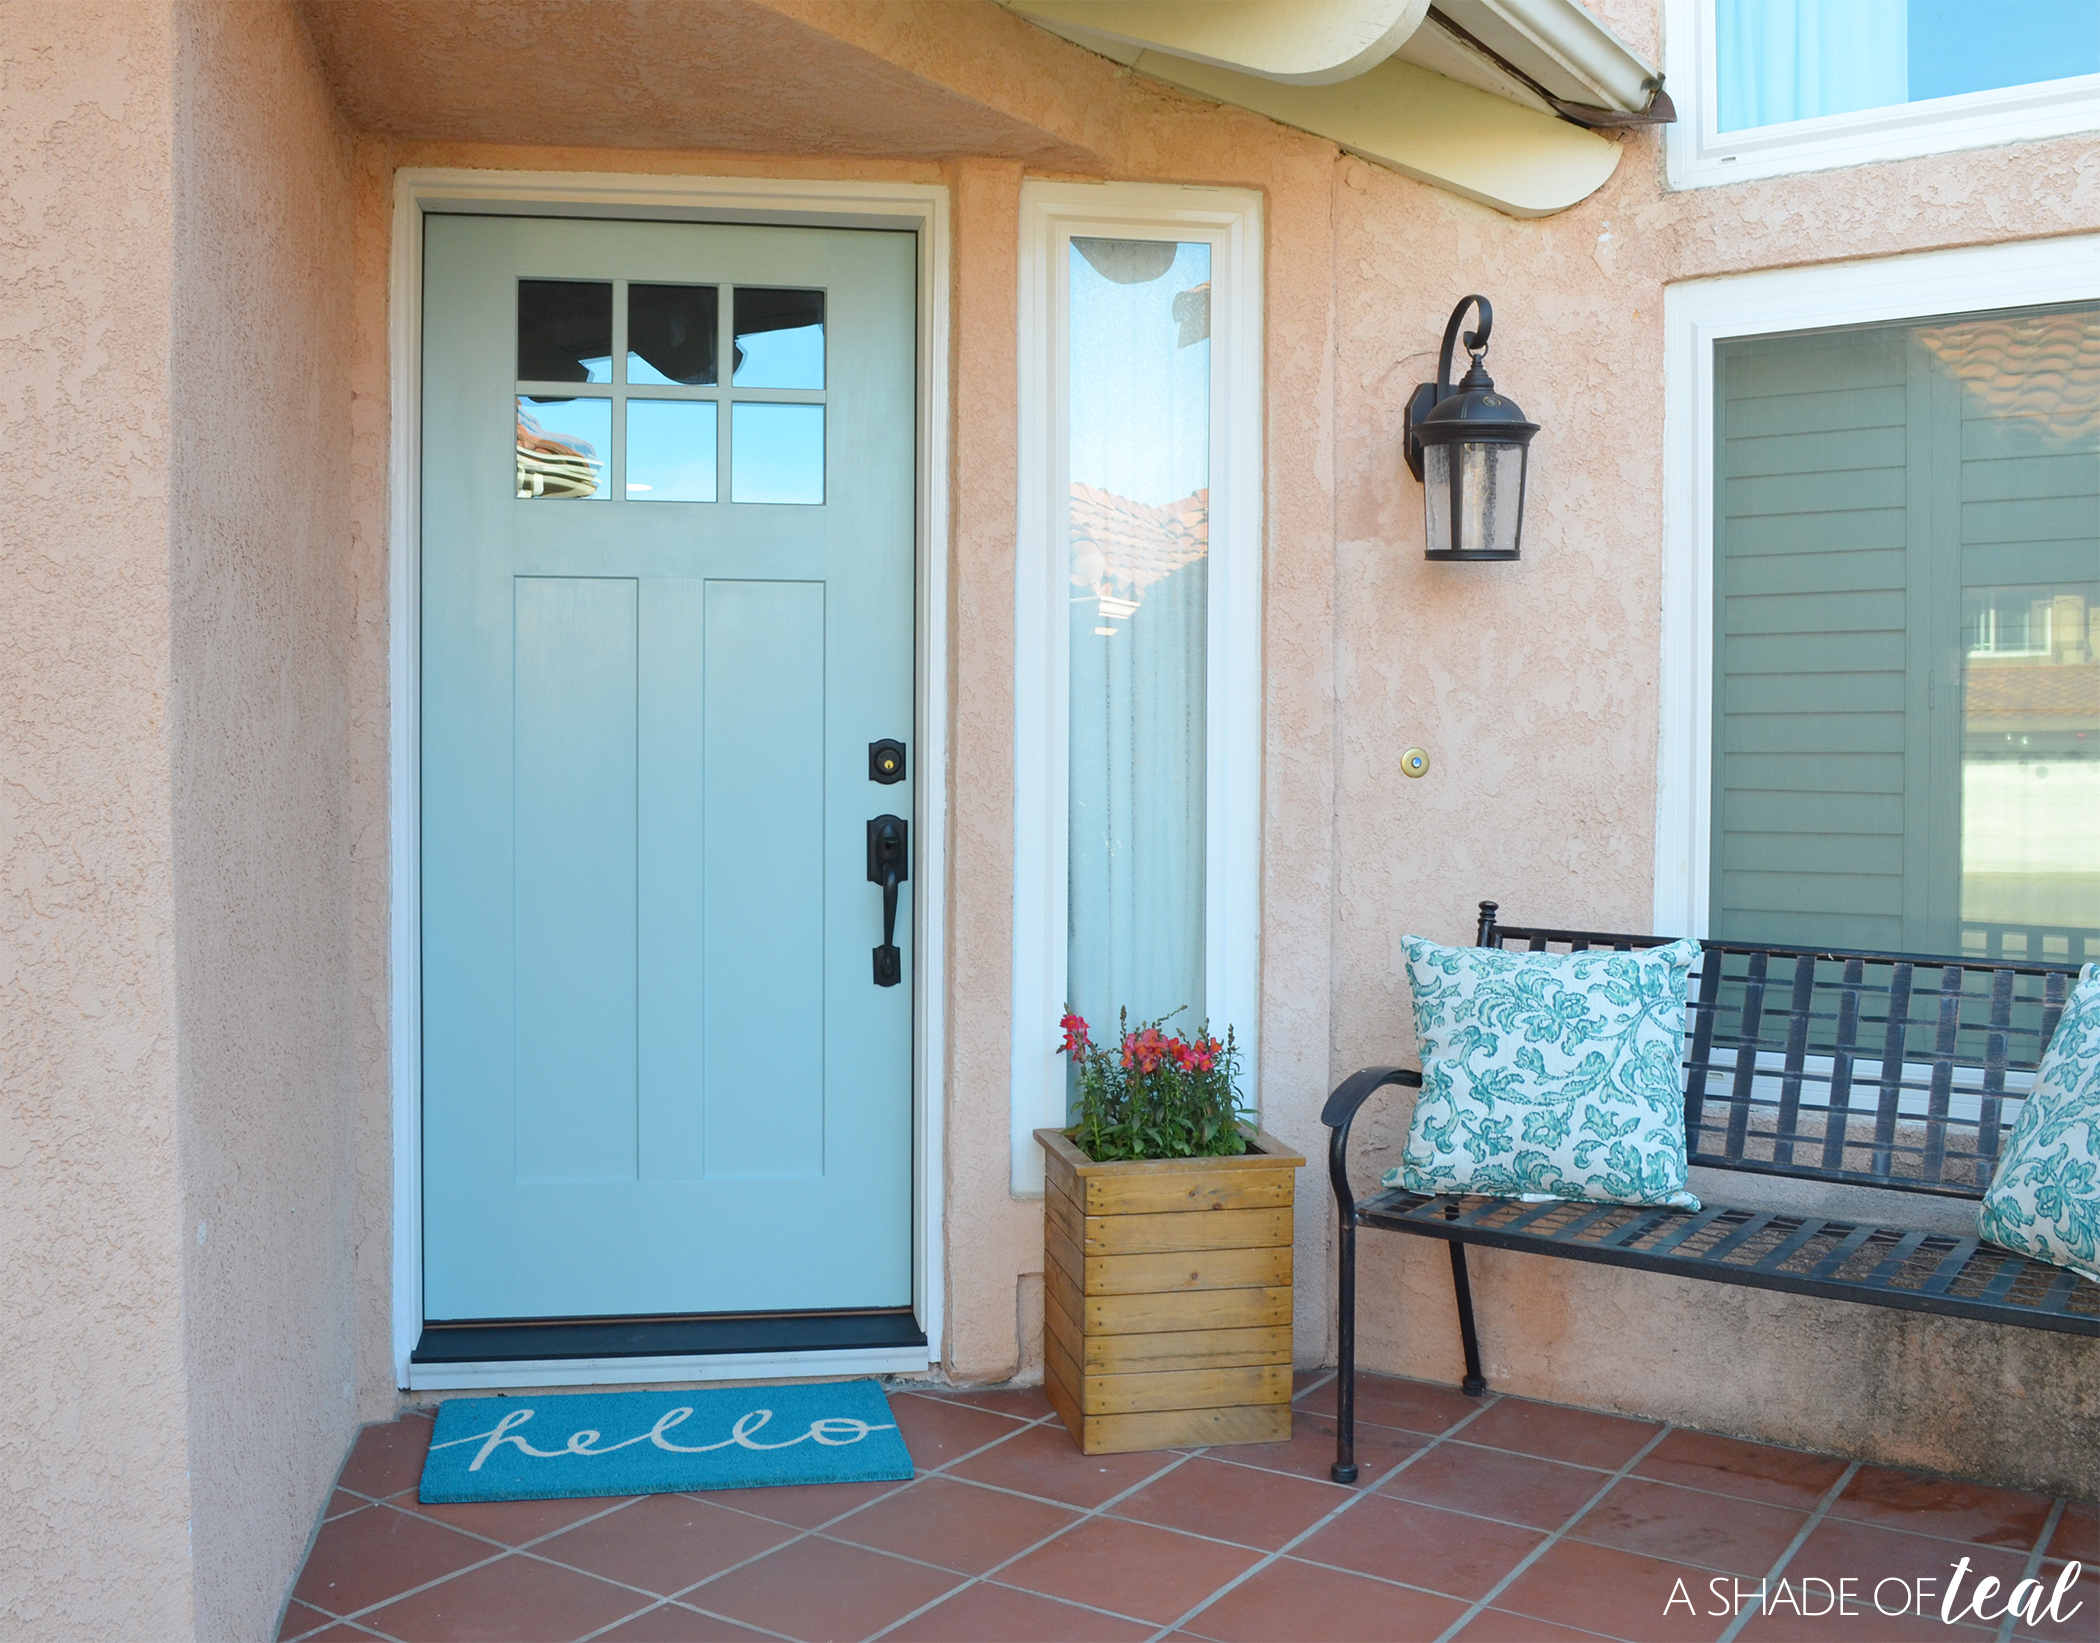 ... door with a NEW Therma-Tru Benchmark door exclusively available at Lowe\u0027s! Well I\u0027m so excited to share with you that it\u0027s finally here and installed! & Updating Curb Appeal with a New Front Door!